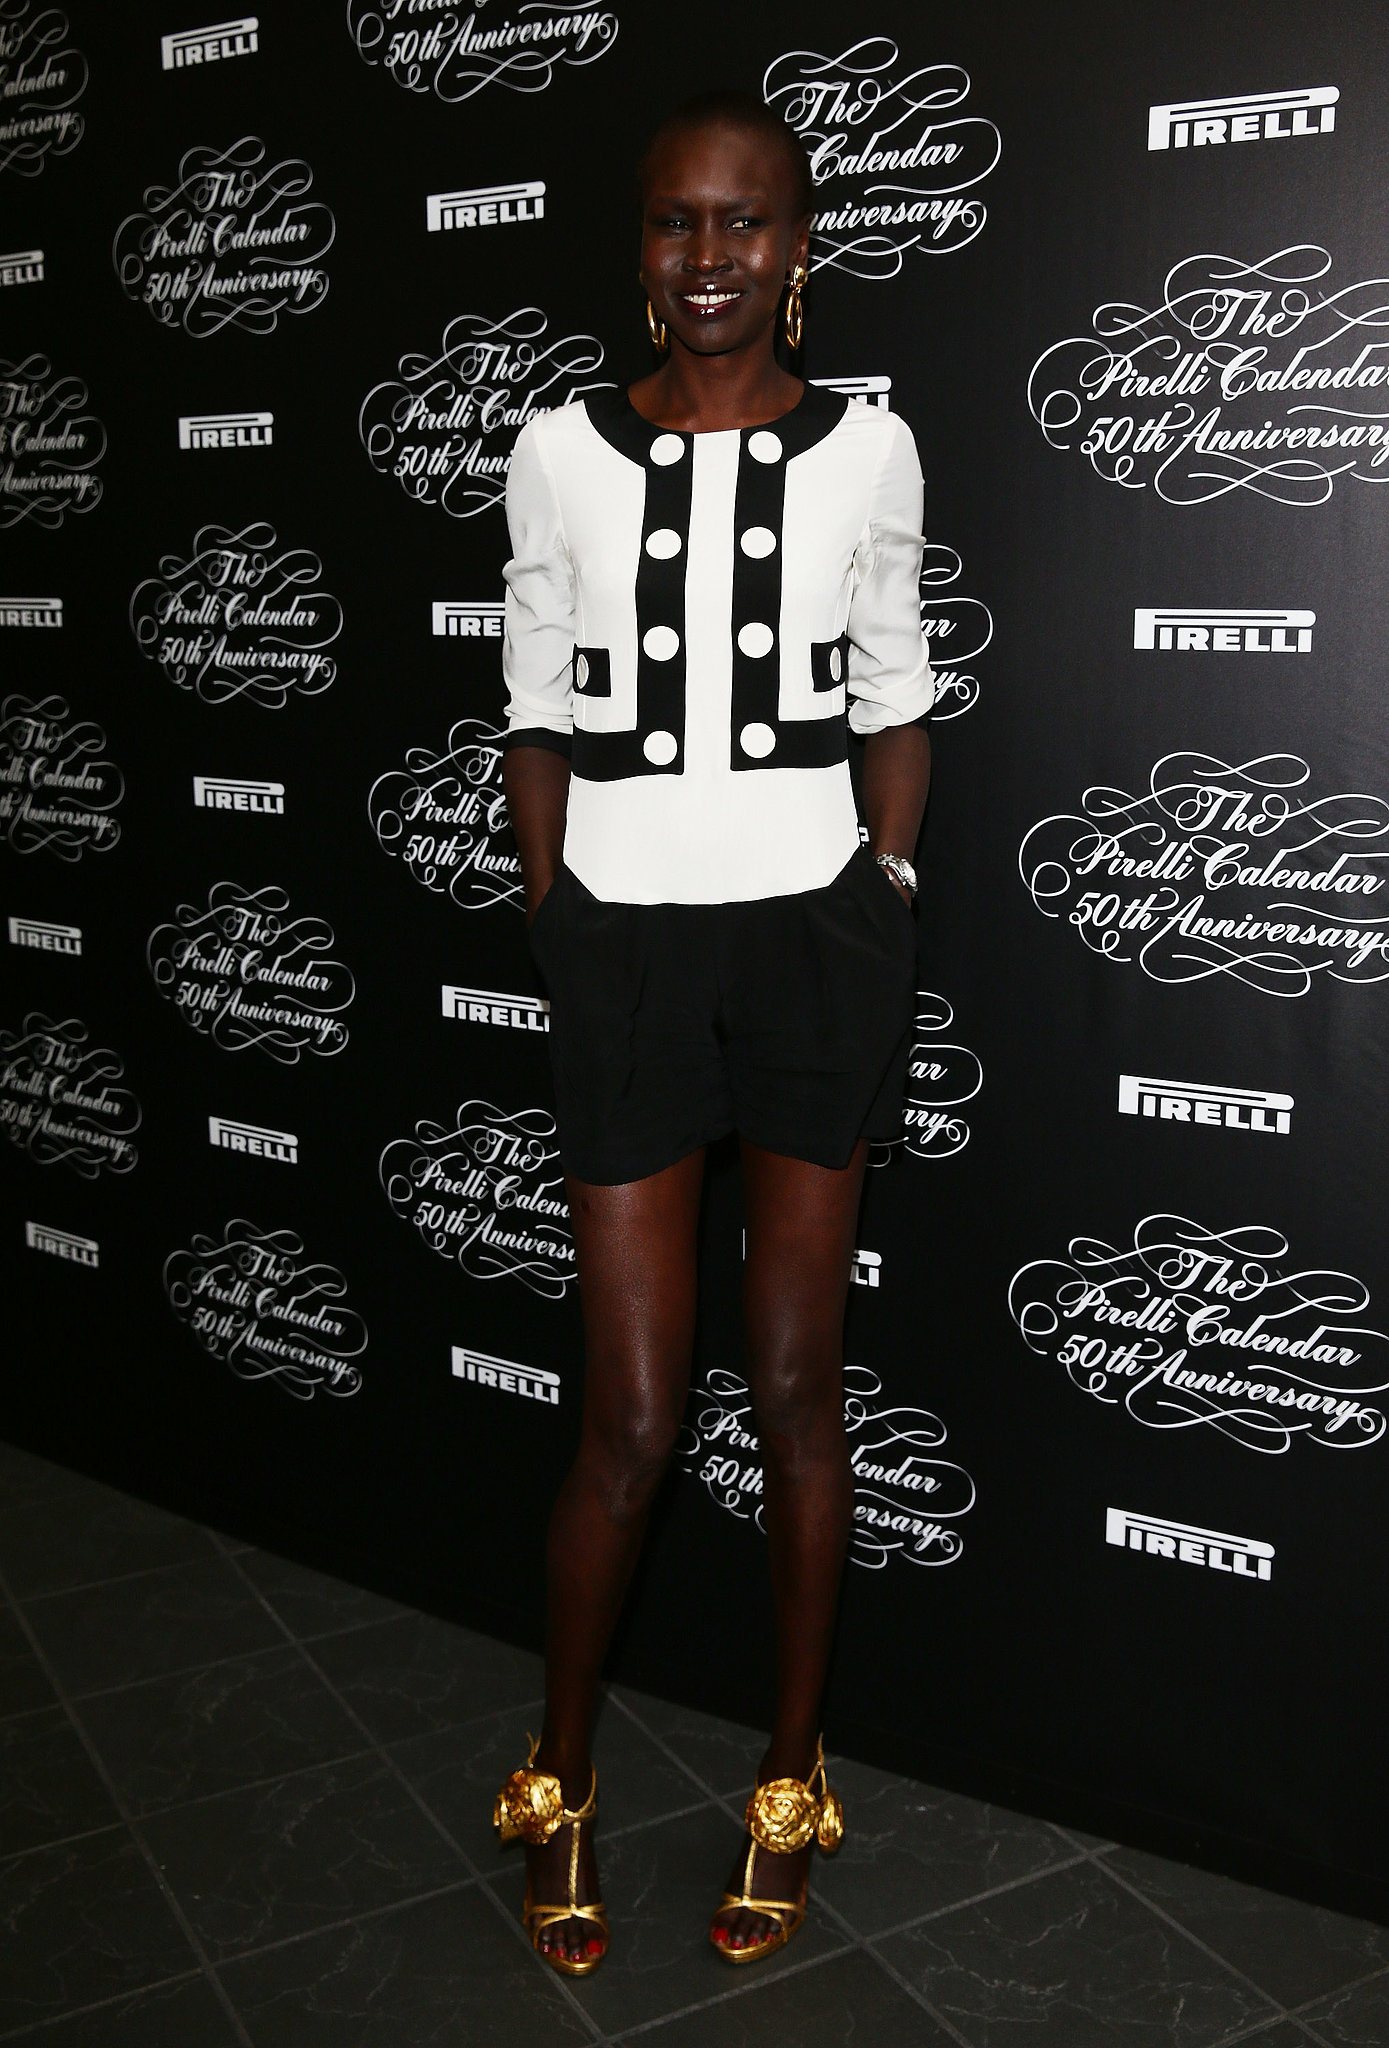 Alek Wek at the Pirelli Calendar's 50 anniversary party.